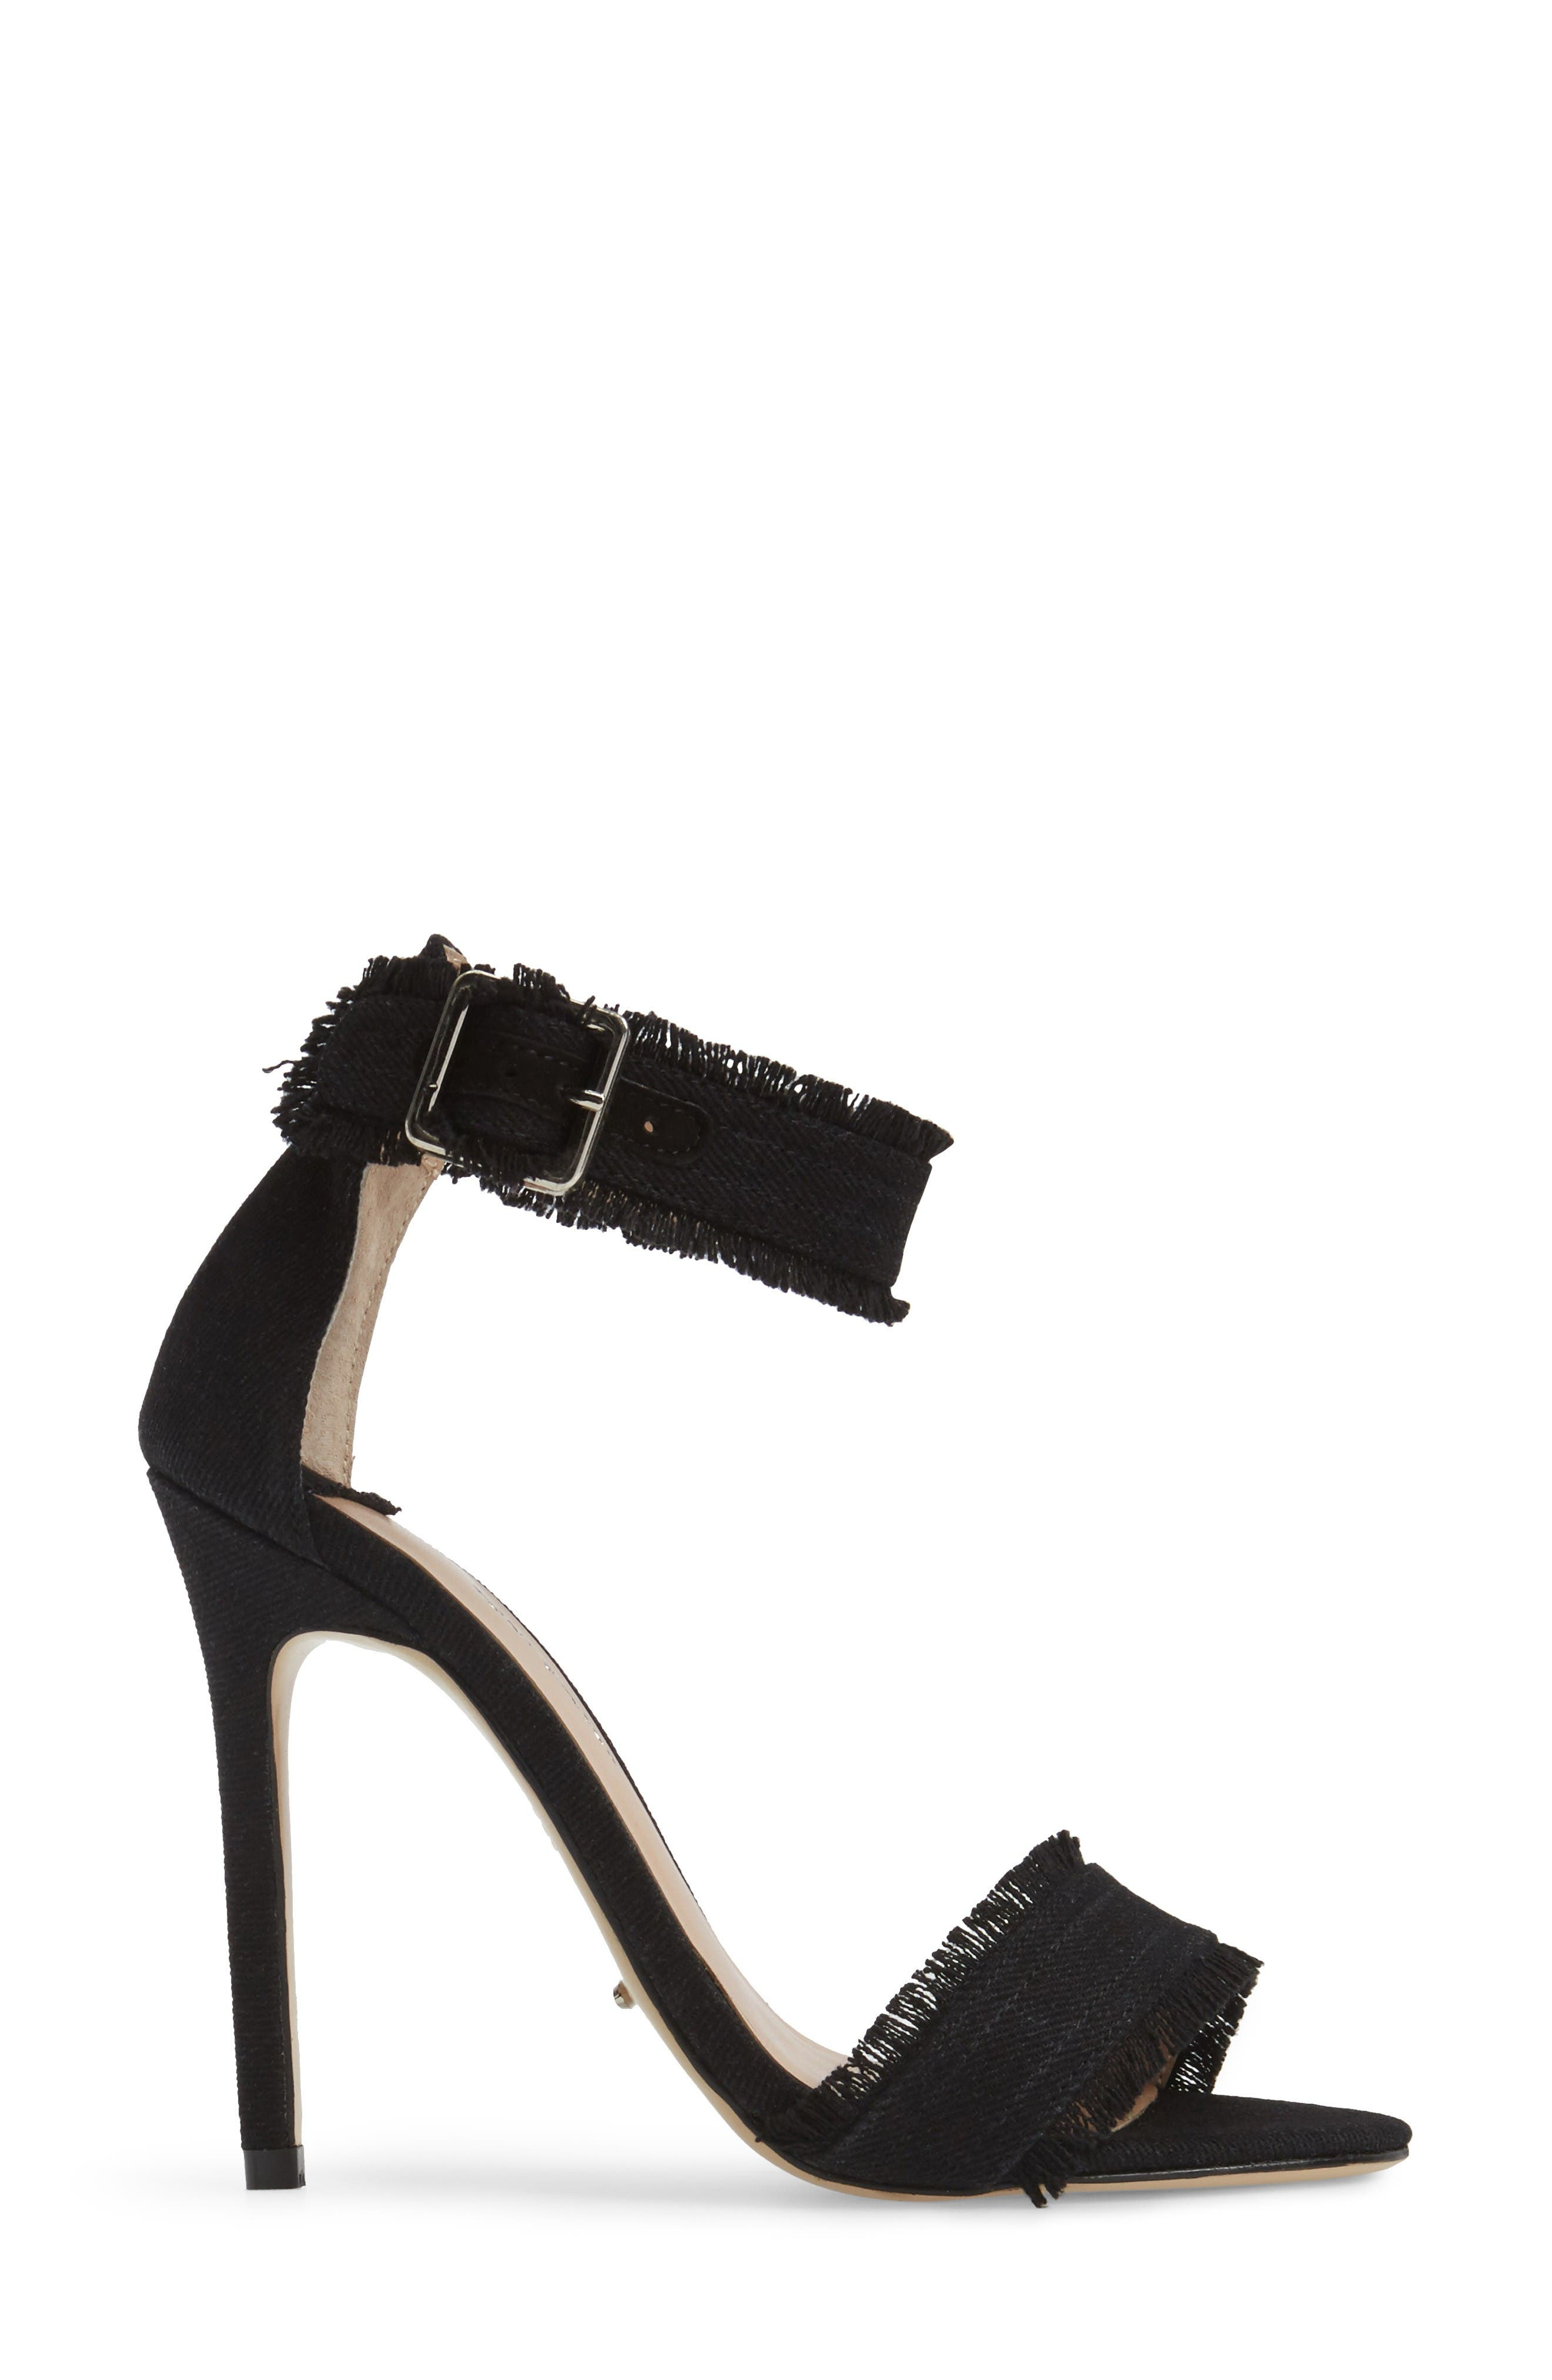 Alternate Image 3  - Tony Bianco Kira Sandal (Women)